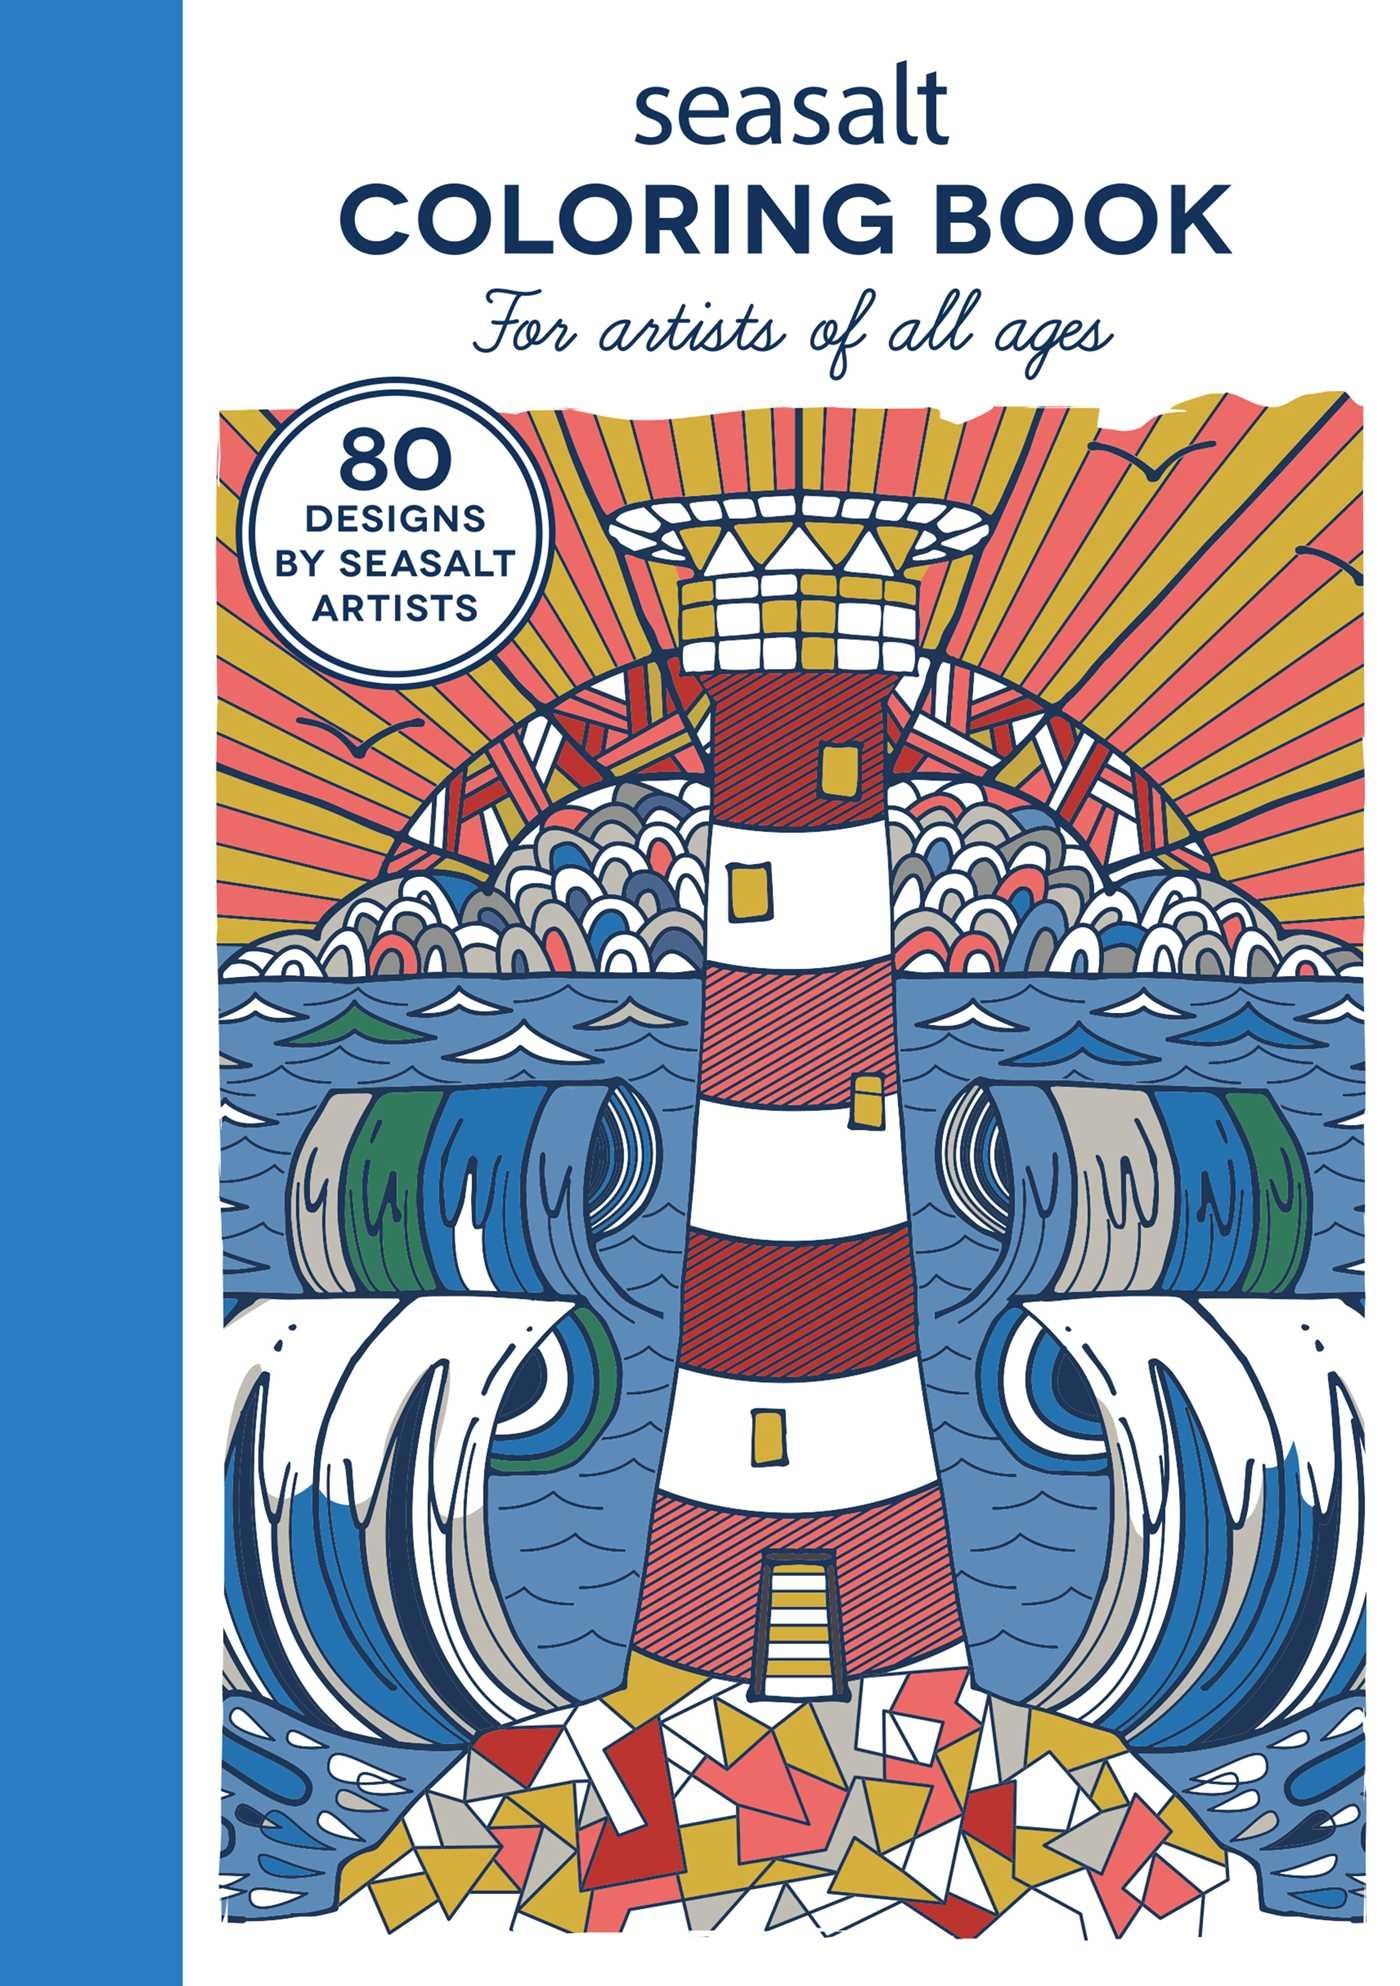 Seasalt Coloring Book: For artists of all ages PDF